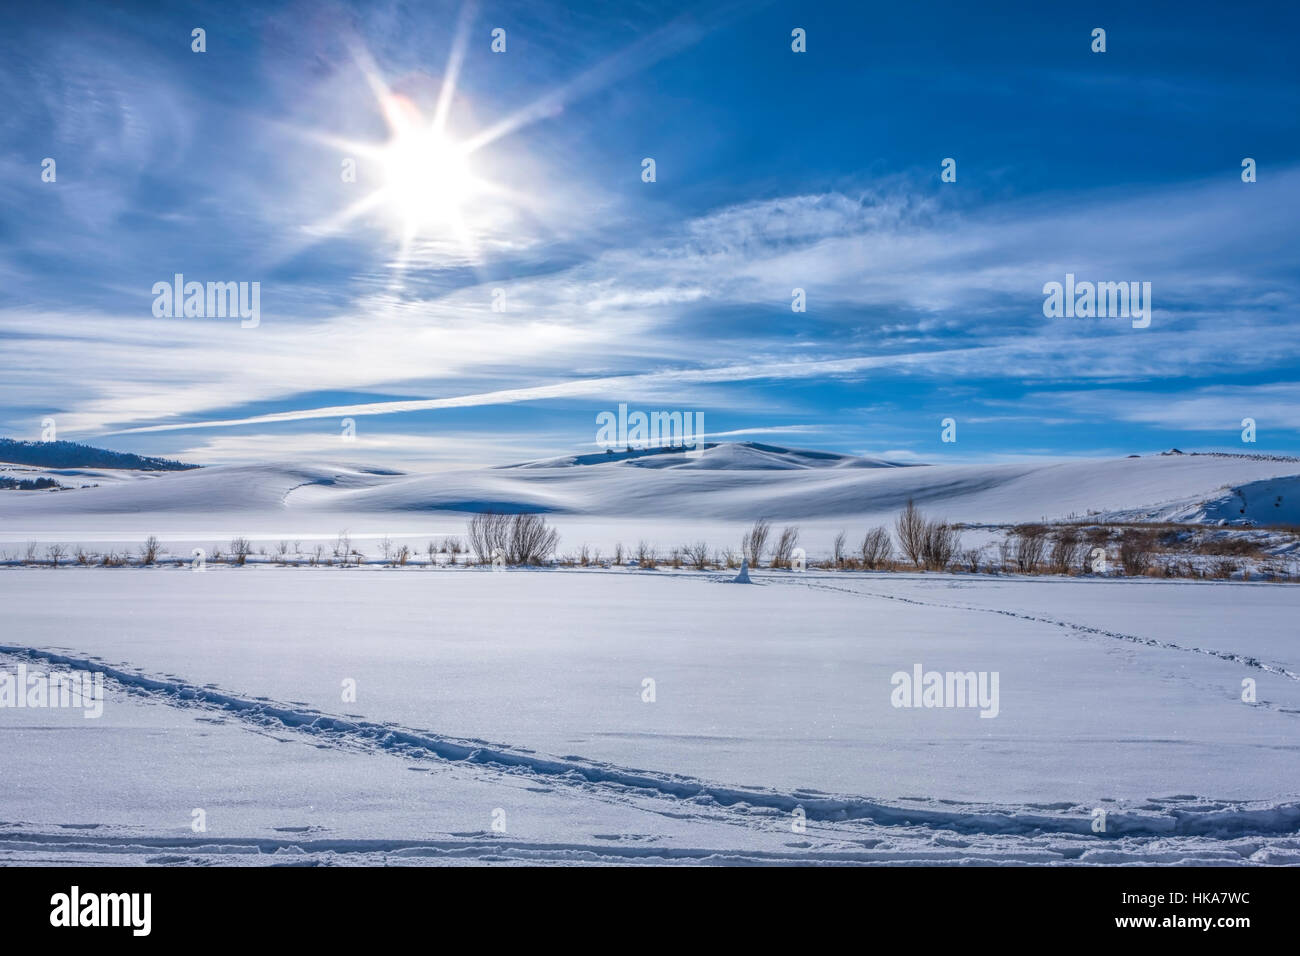 Sun shines over snowy field in Moscow, Idaho. - Stock Image